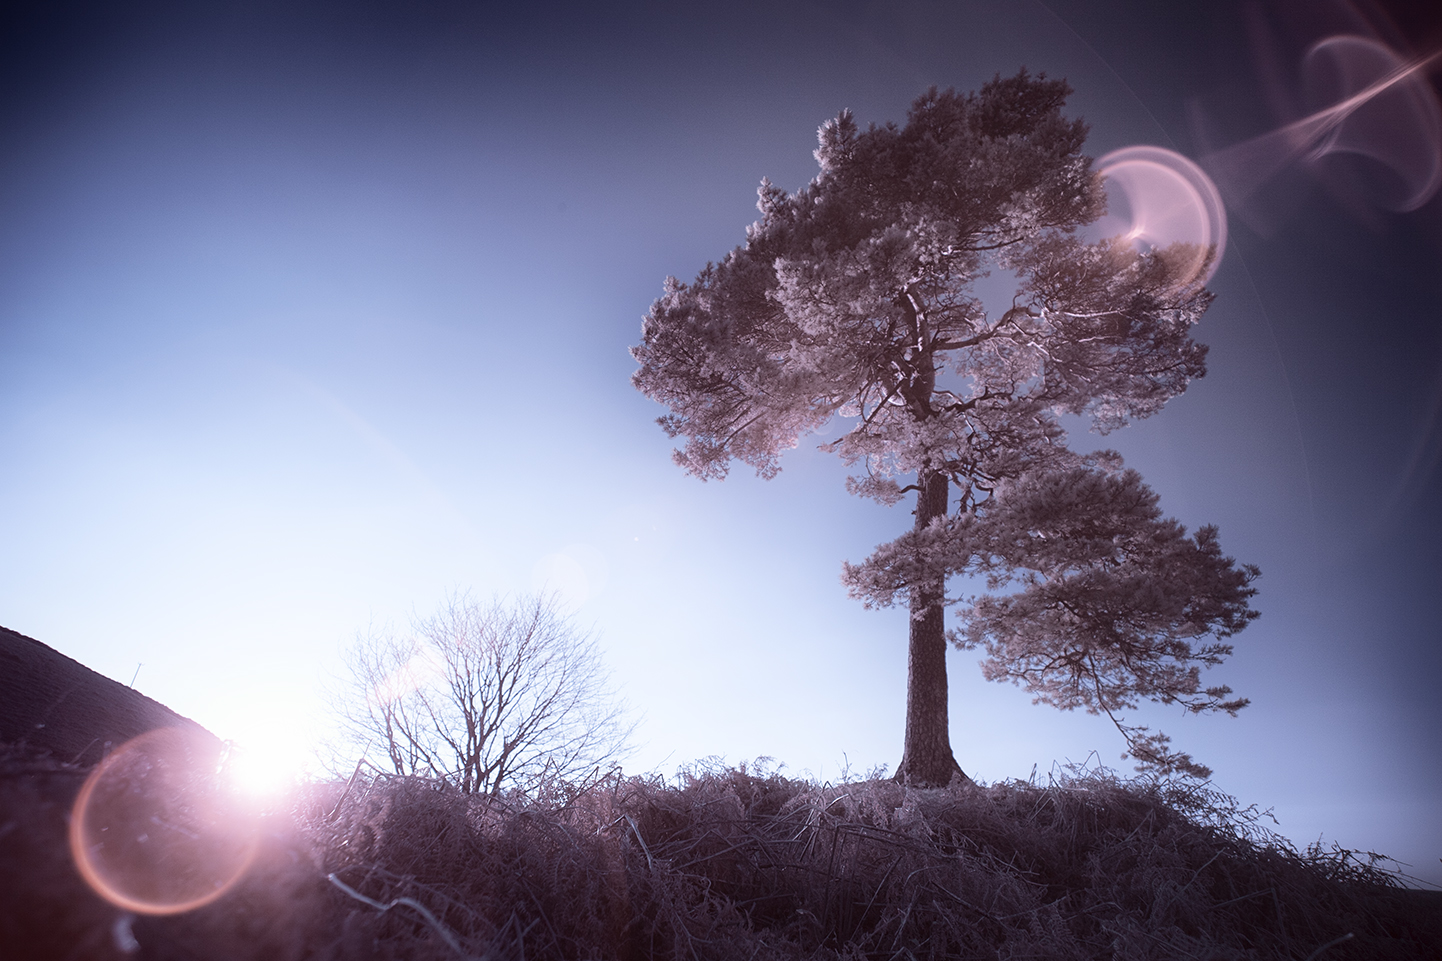 infrared-whw-trees16-copy